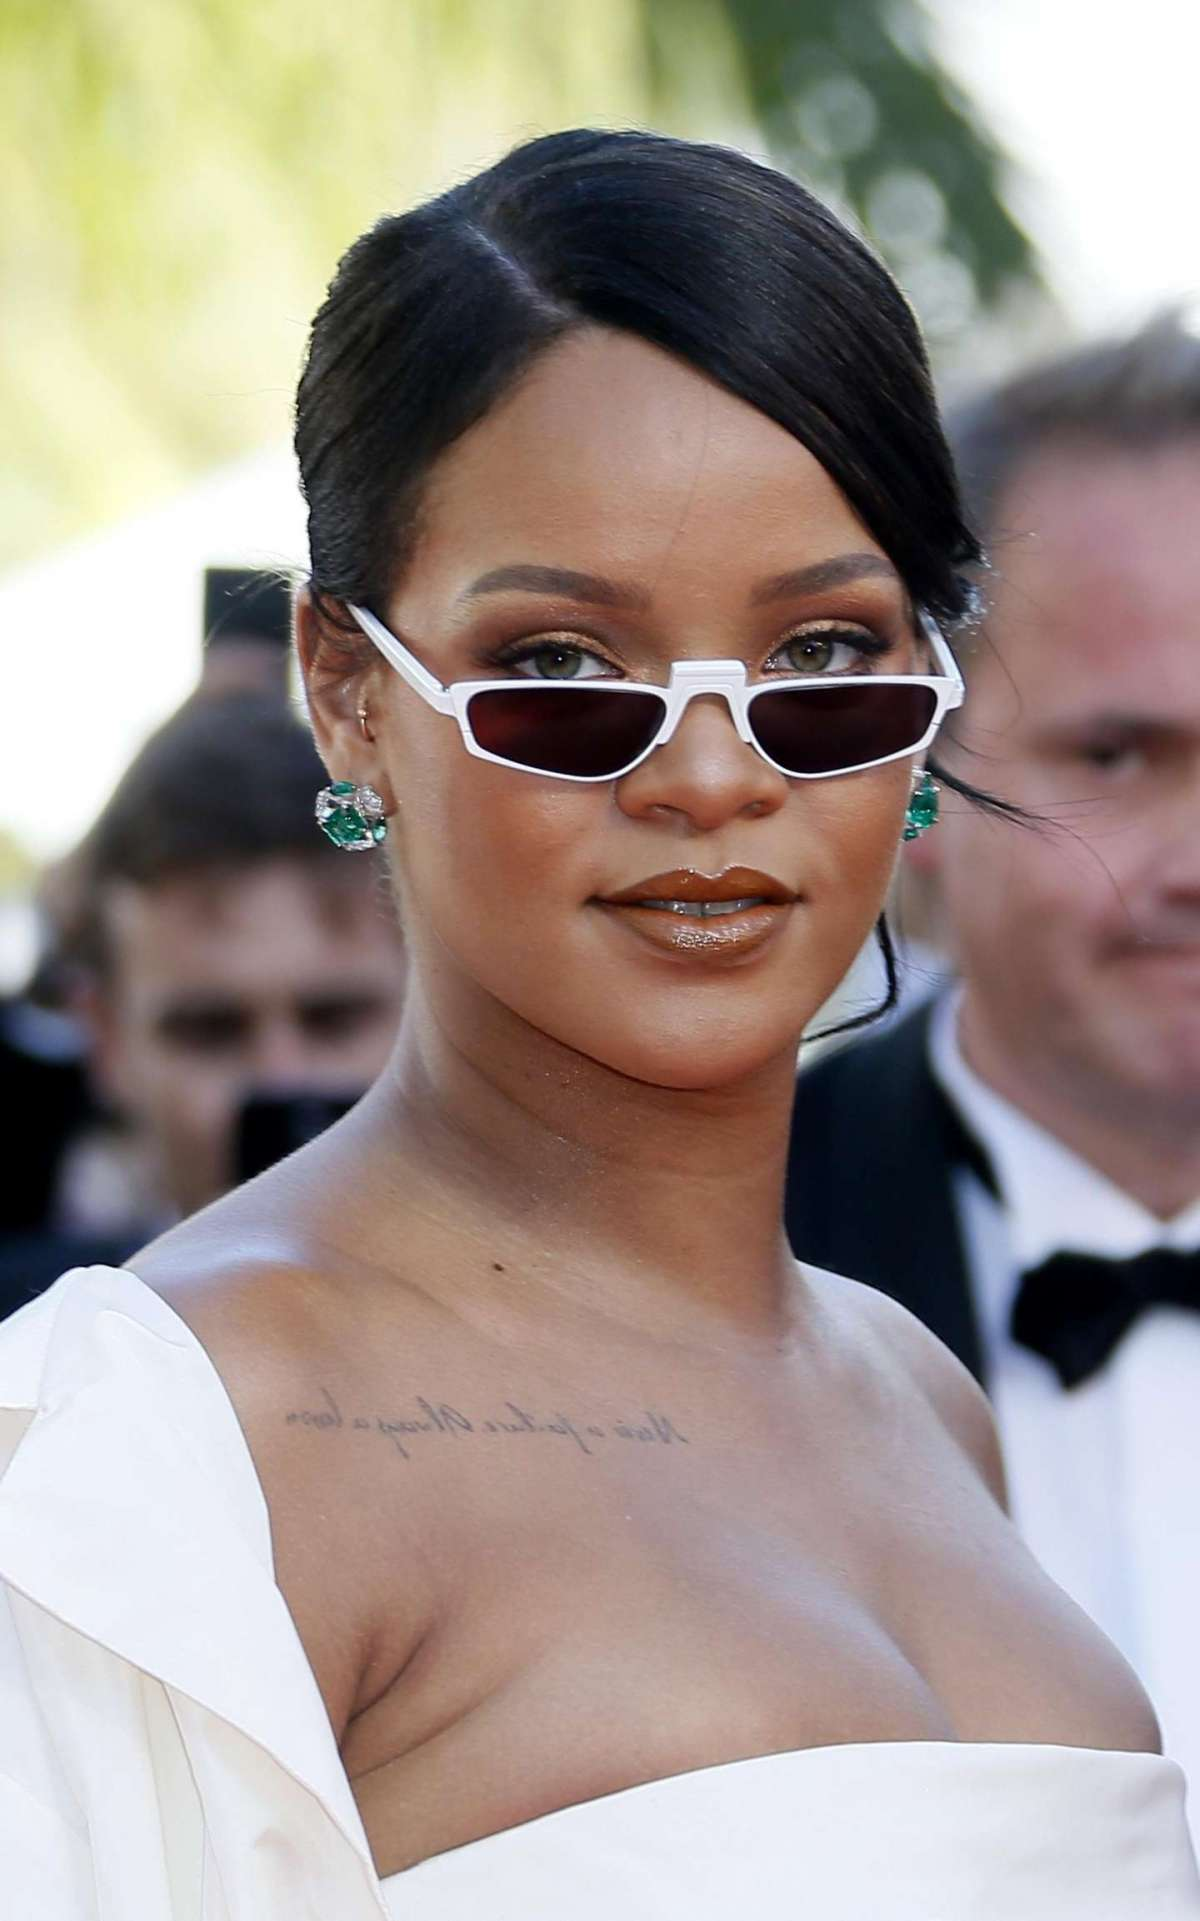 Barbadian singer Rihanna arrives for the premiere of Okja during the 70th annual Cannes Film Festival, in Cannes, France, 19 May 2017